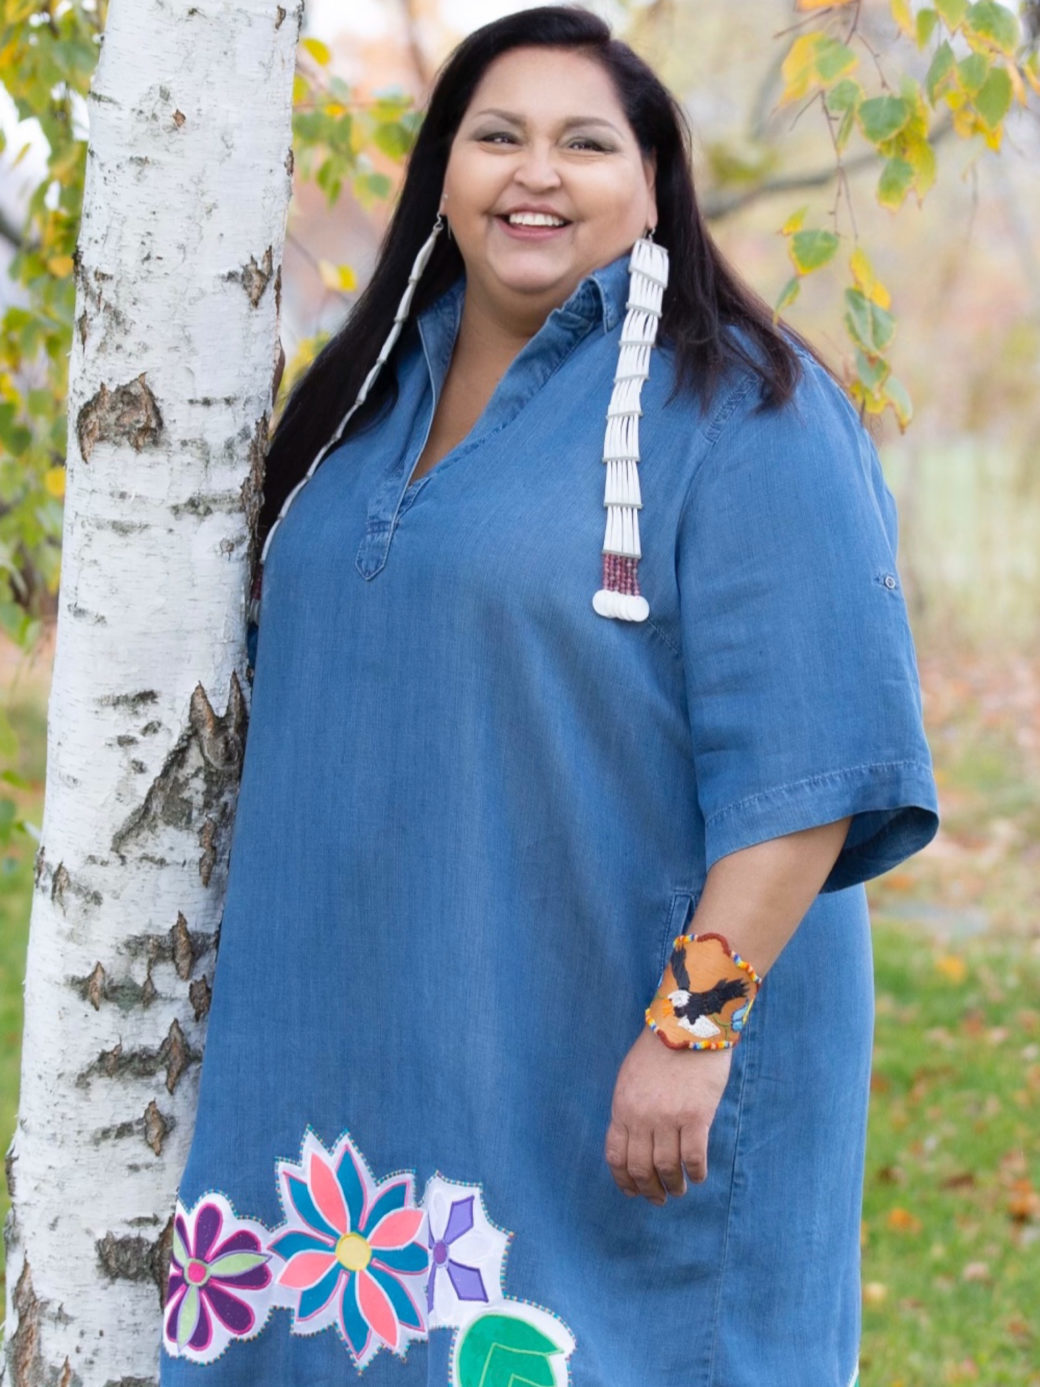 A person with long dark hair poses for a photo next to a tree in a blue dress with multi-colored floral patterns near the bottom